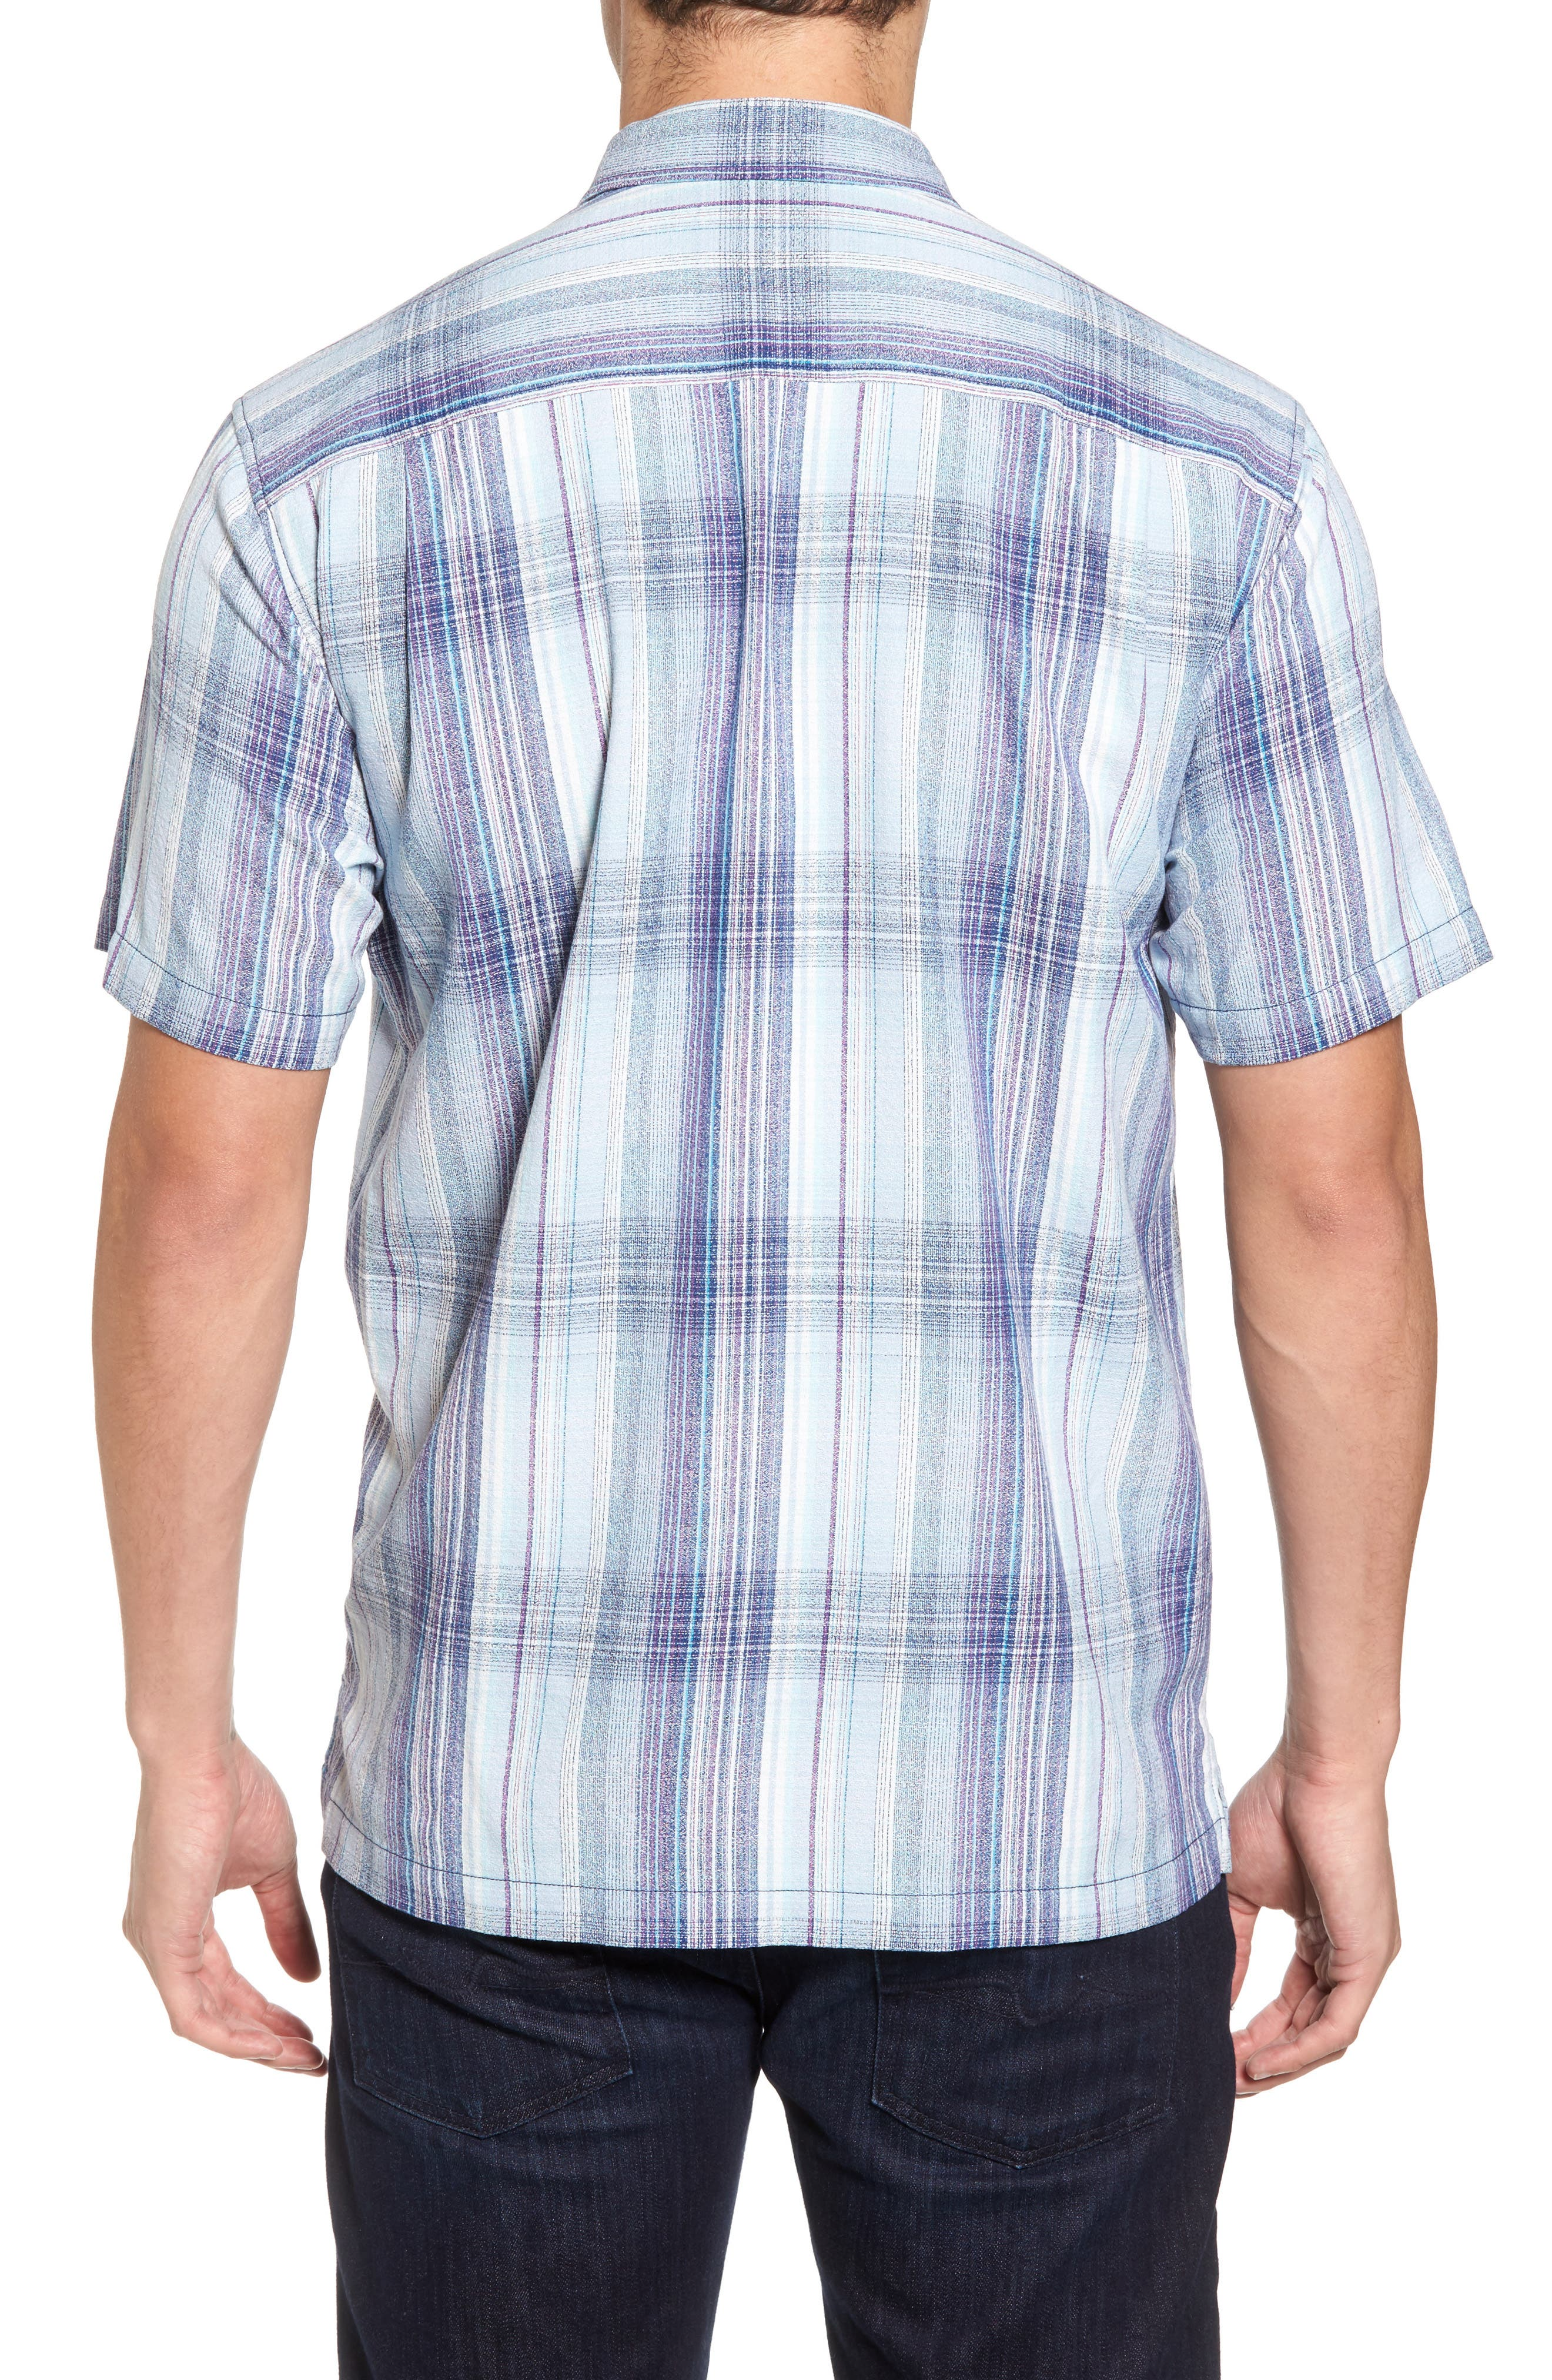 TOMMY BAHAMA,                             Banyan Cay Plaid Silk Blend Camp Shirt,                             Alternate thumbnail 2, color,                             401